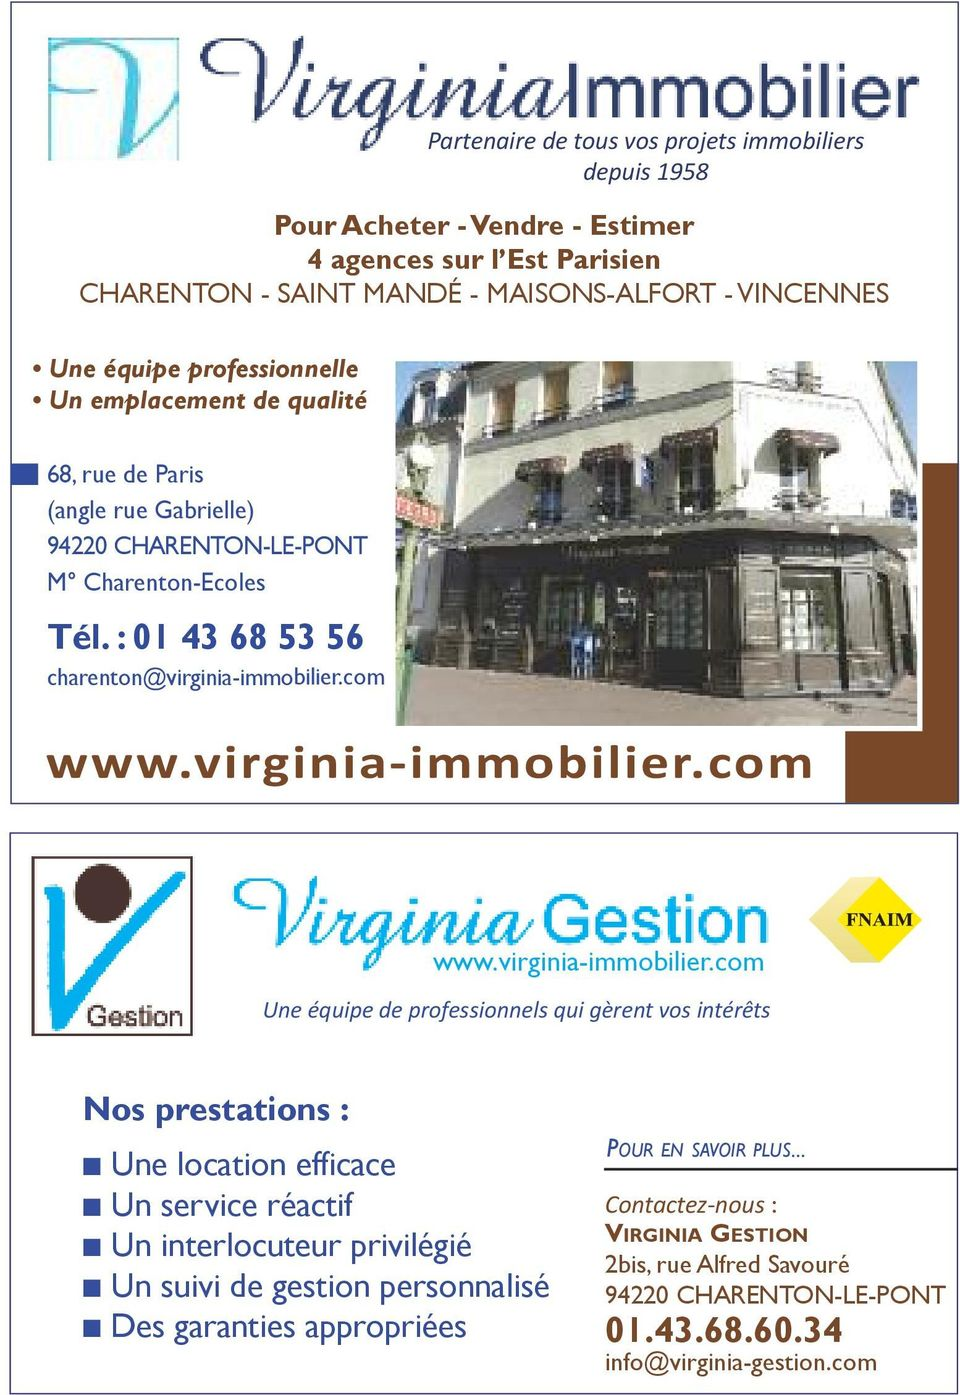 virginia-immobilier.